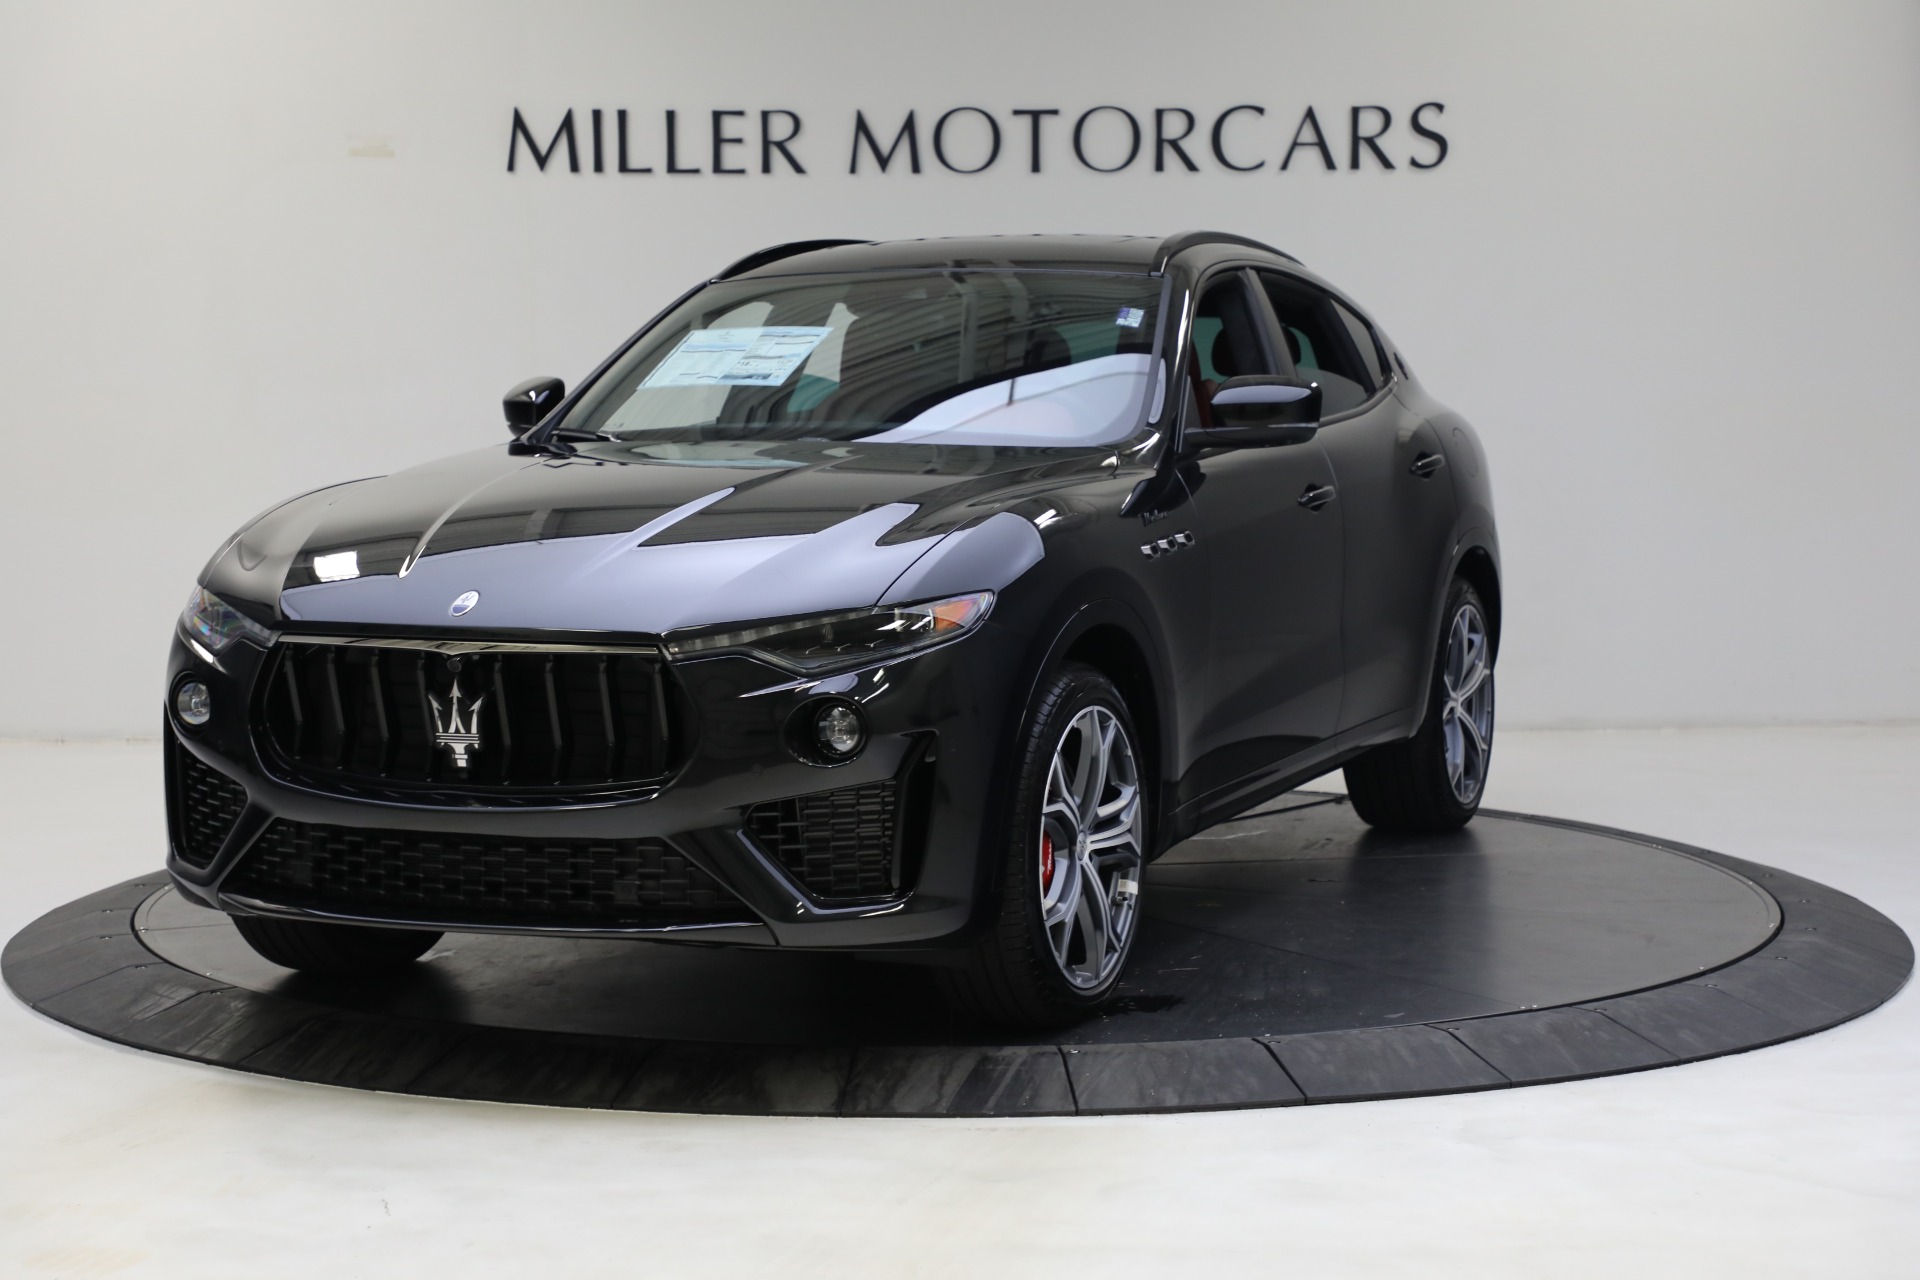 New 2022 Maserati Levante Modena for sale $113,375 at Rolls-Royce Motor Cars Greenwich in Greenwich CT 06830 1